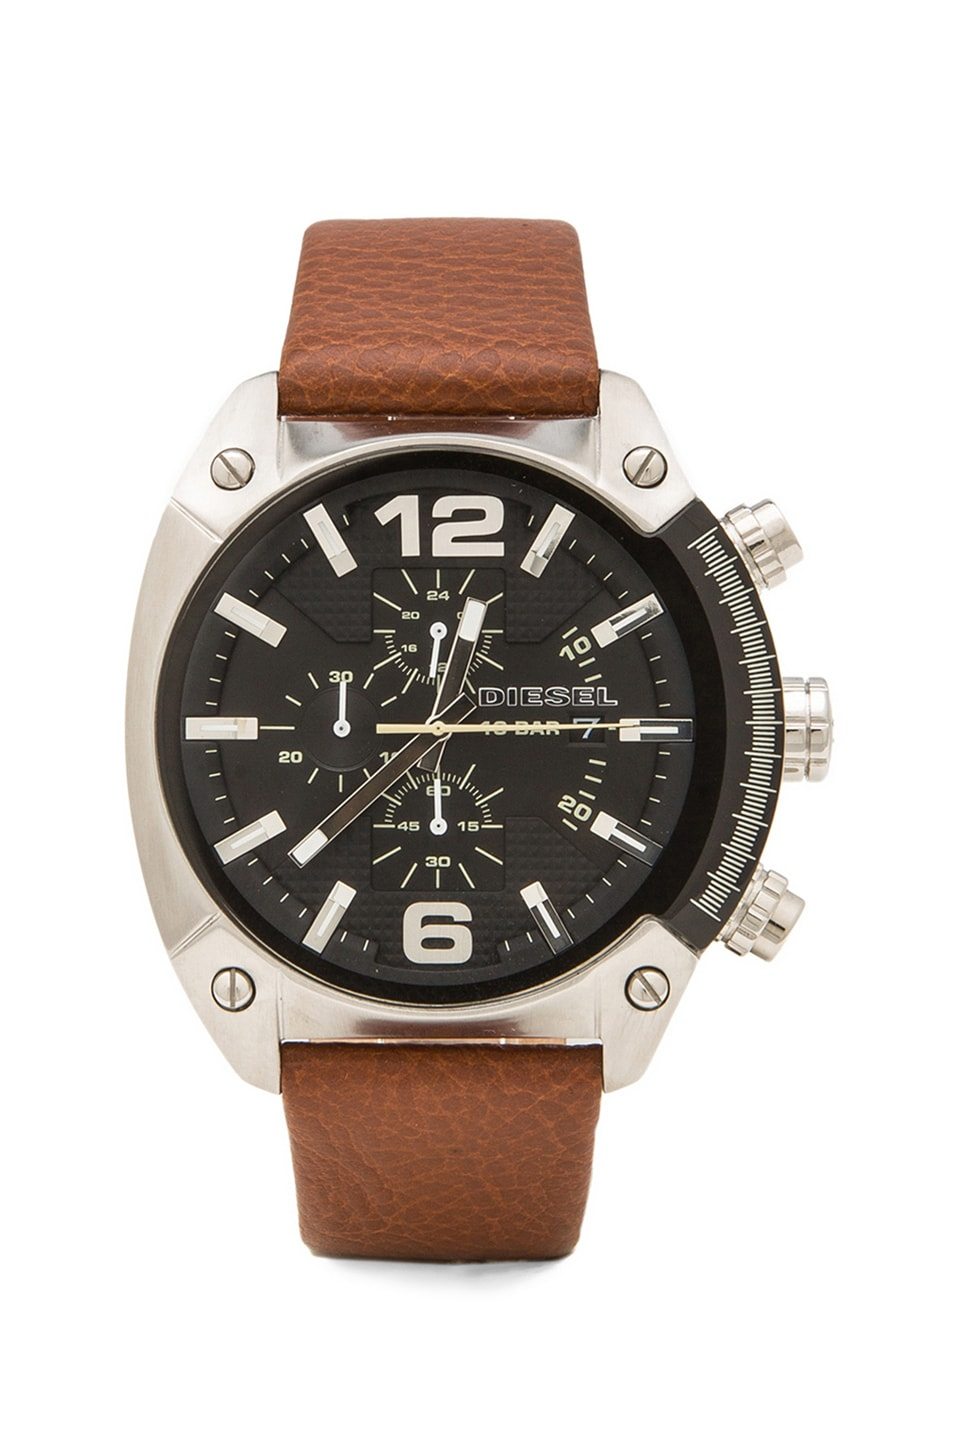 Diesel DZ4296 in Brown/Black